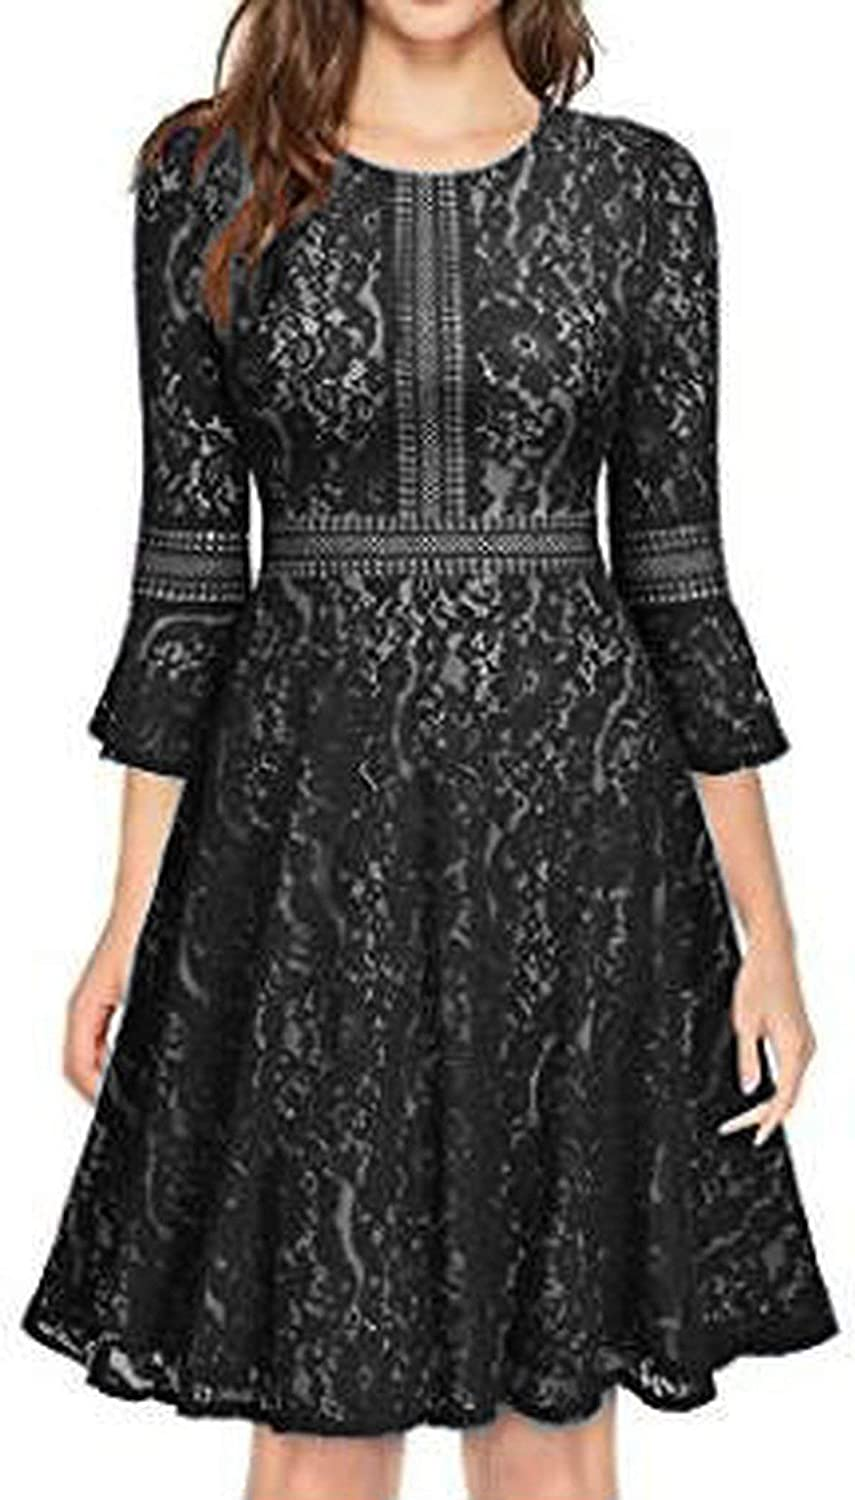 Black L Women Vintage Full Lace Contrast Flare Sleeve Big Swing A-Line Dress for Evening Cocktail Wedding Party Business Occasion